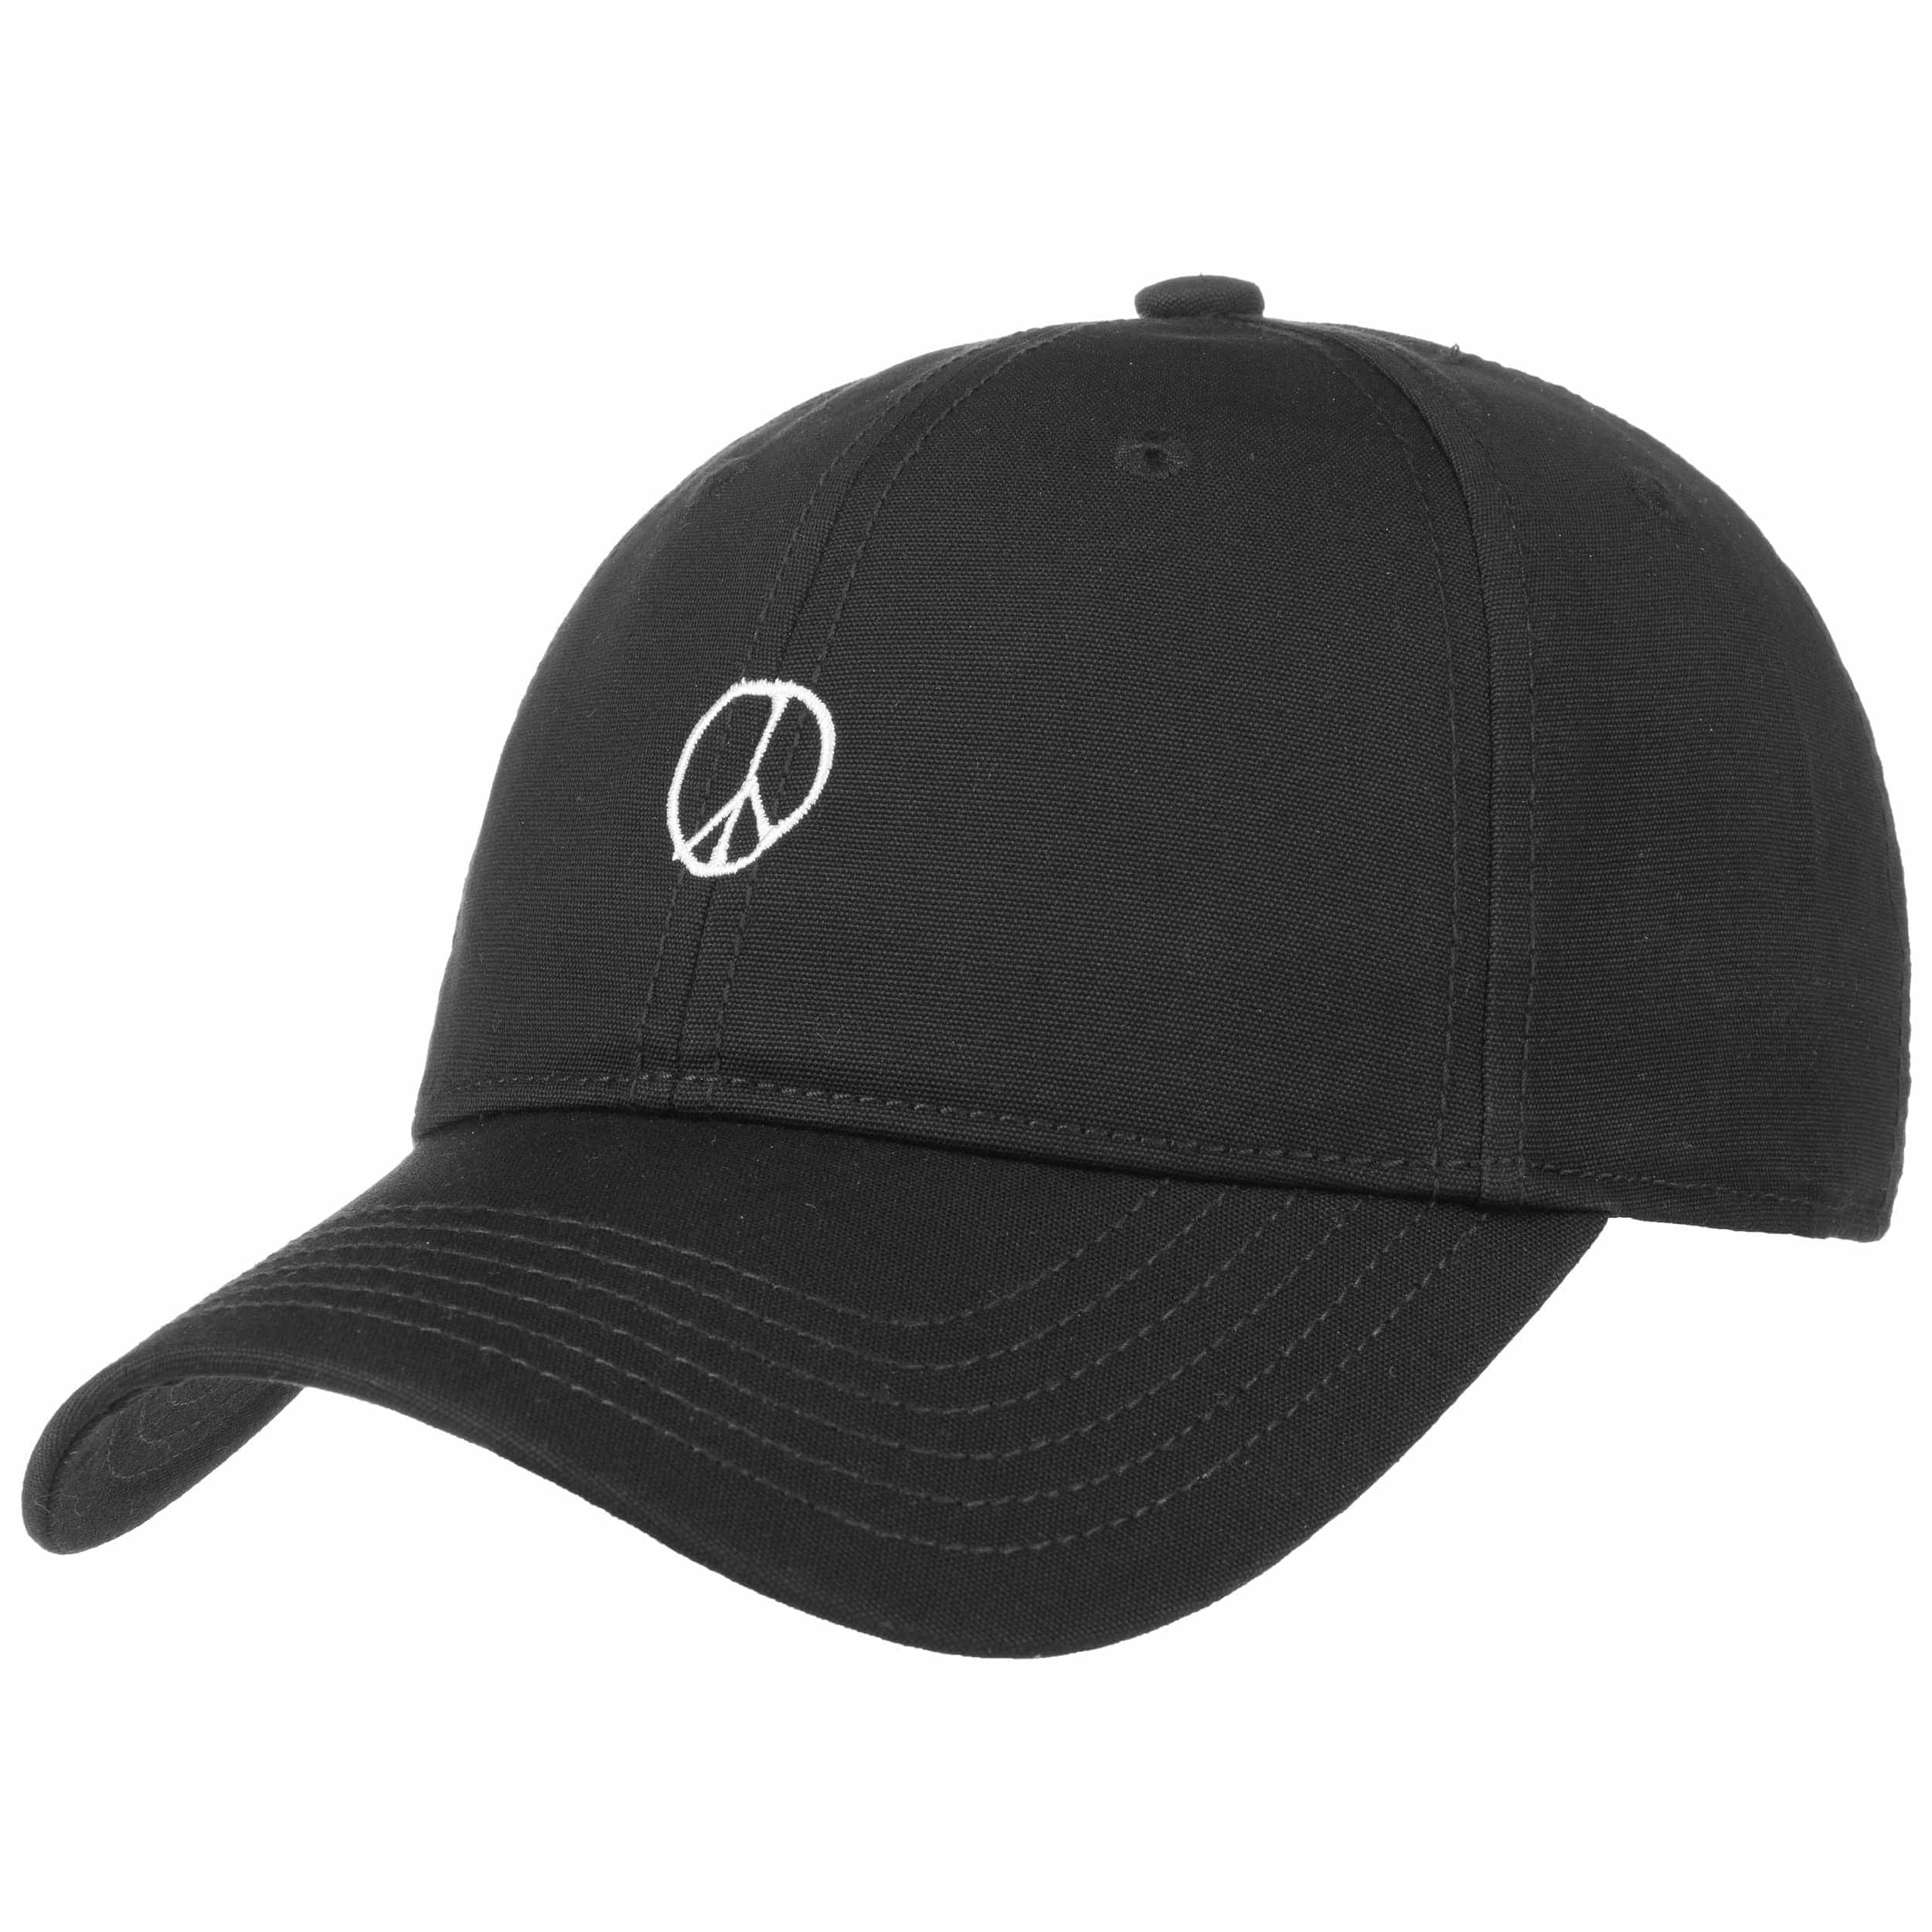 Peace sign strapback cap by dedicated eur gt hats